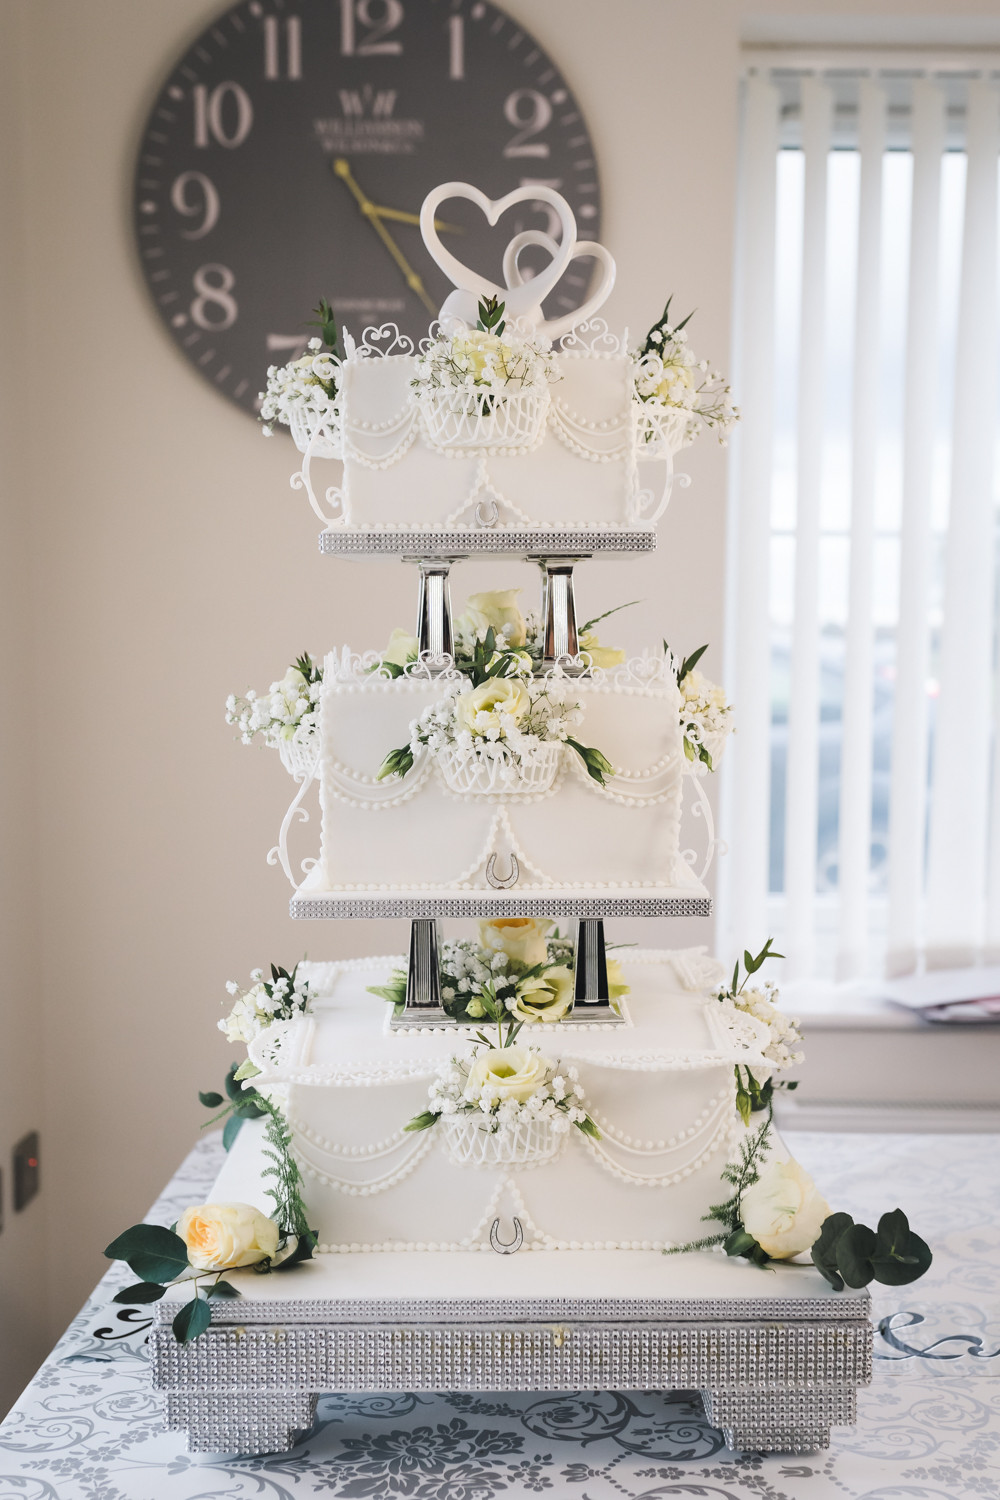 cake by Vintage Cake Craft, Spalding